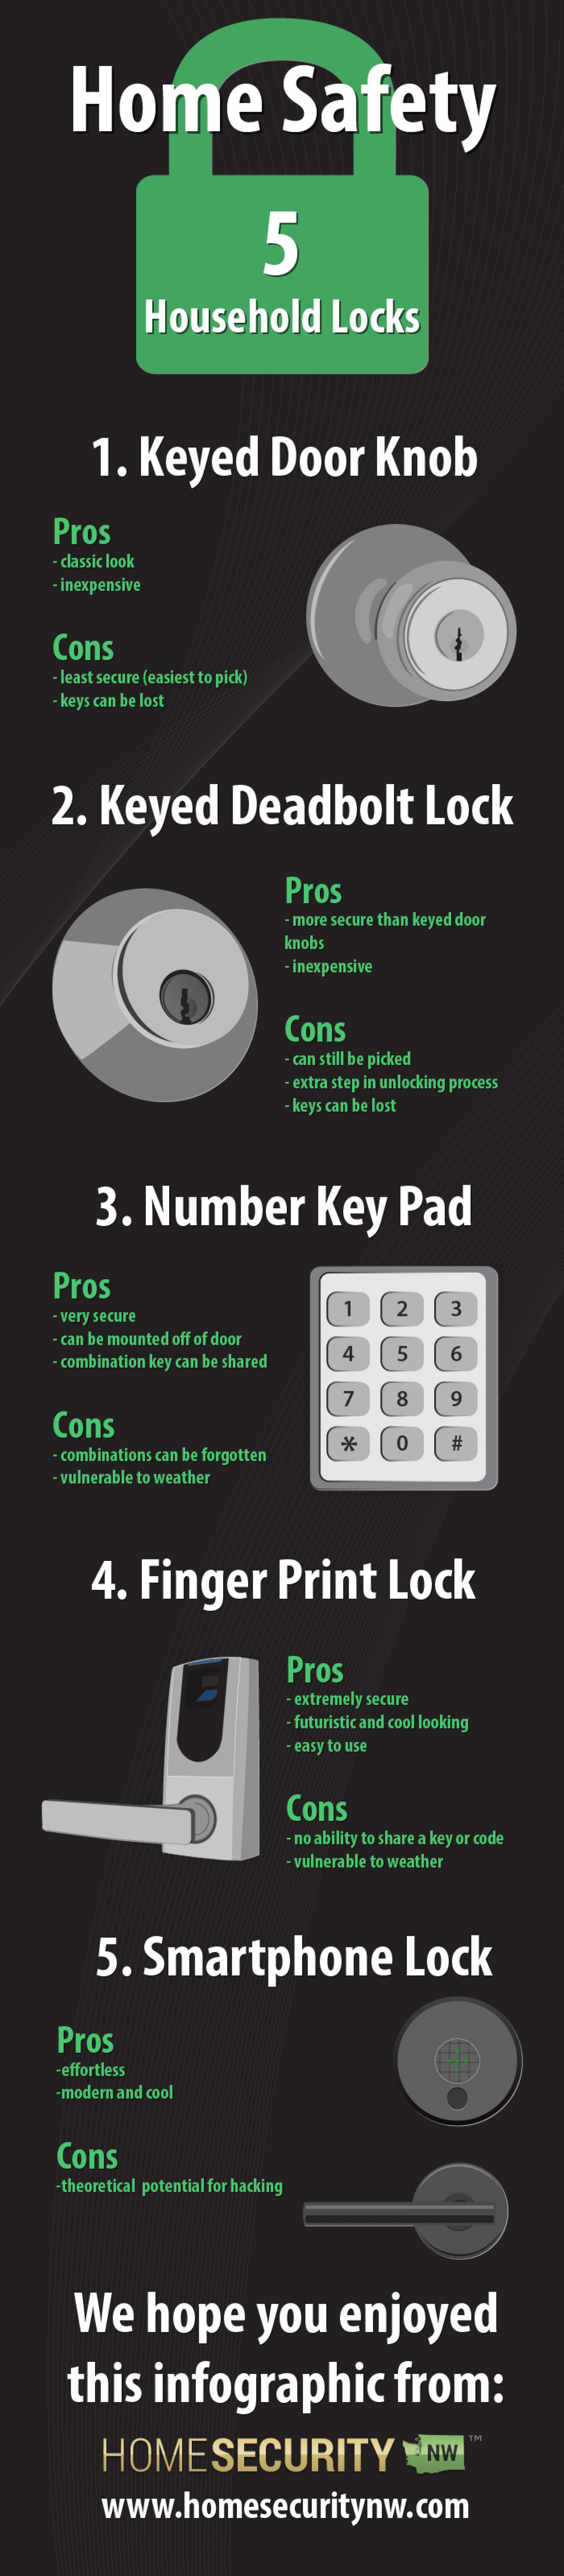 Pros and Cons of Different Door Locks Infographic